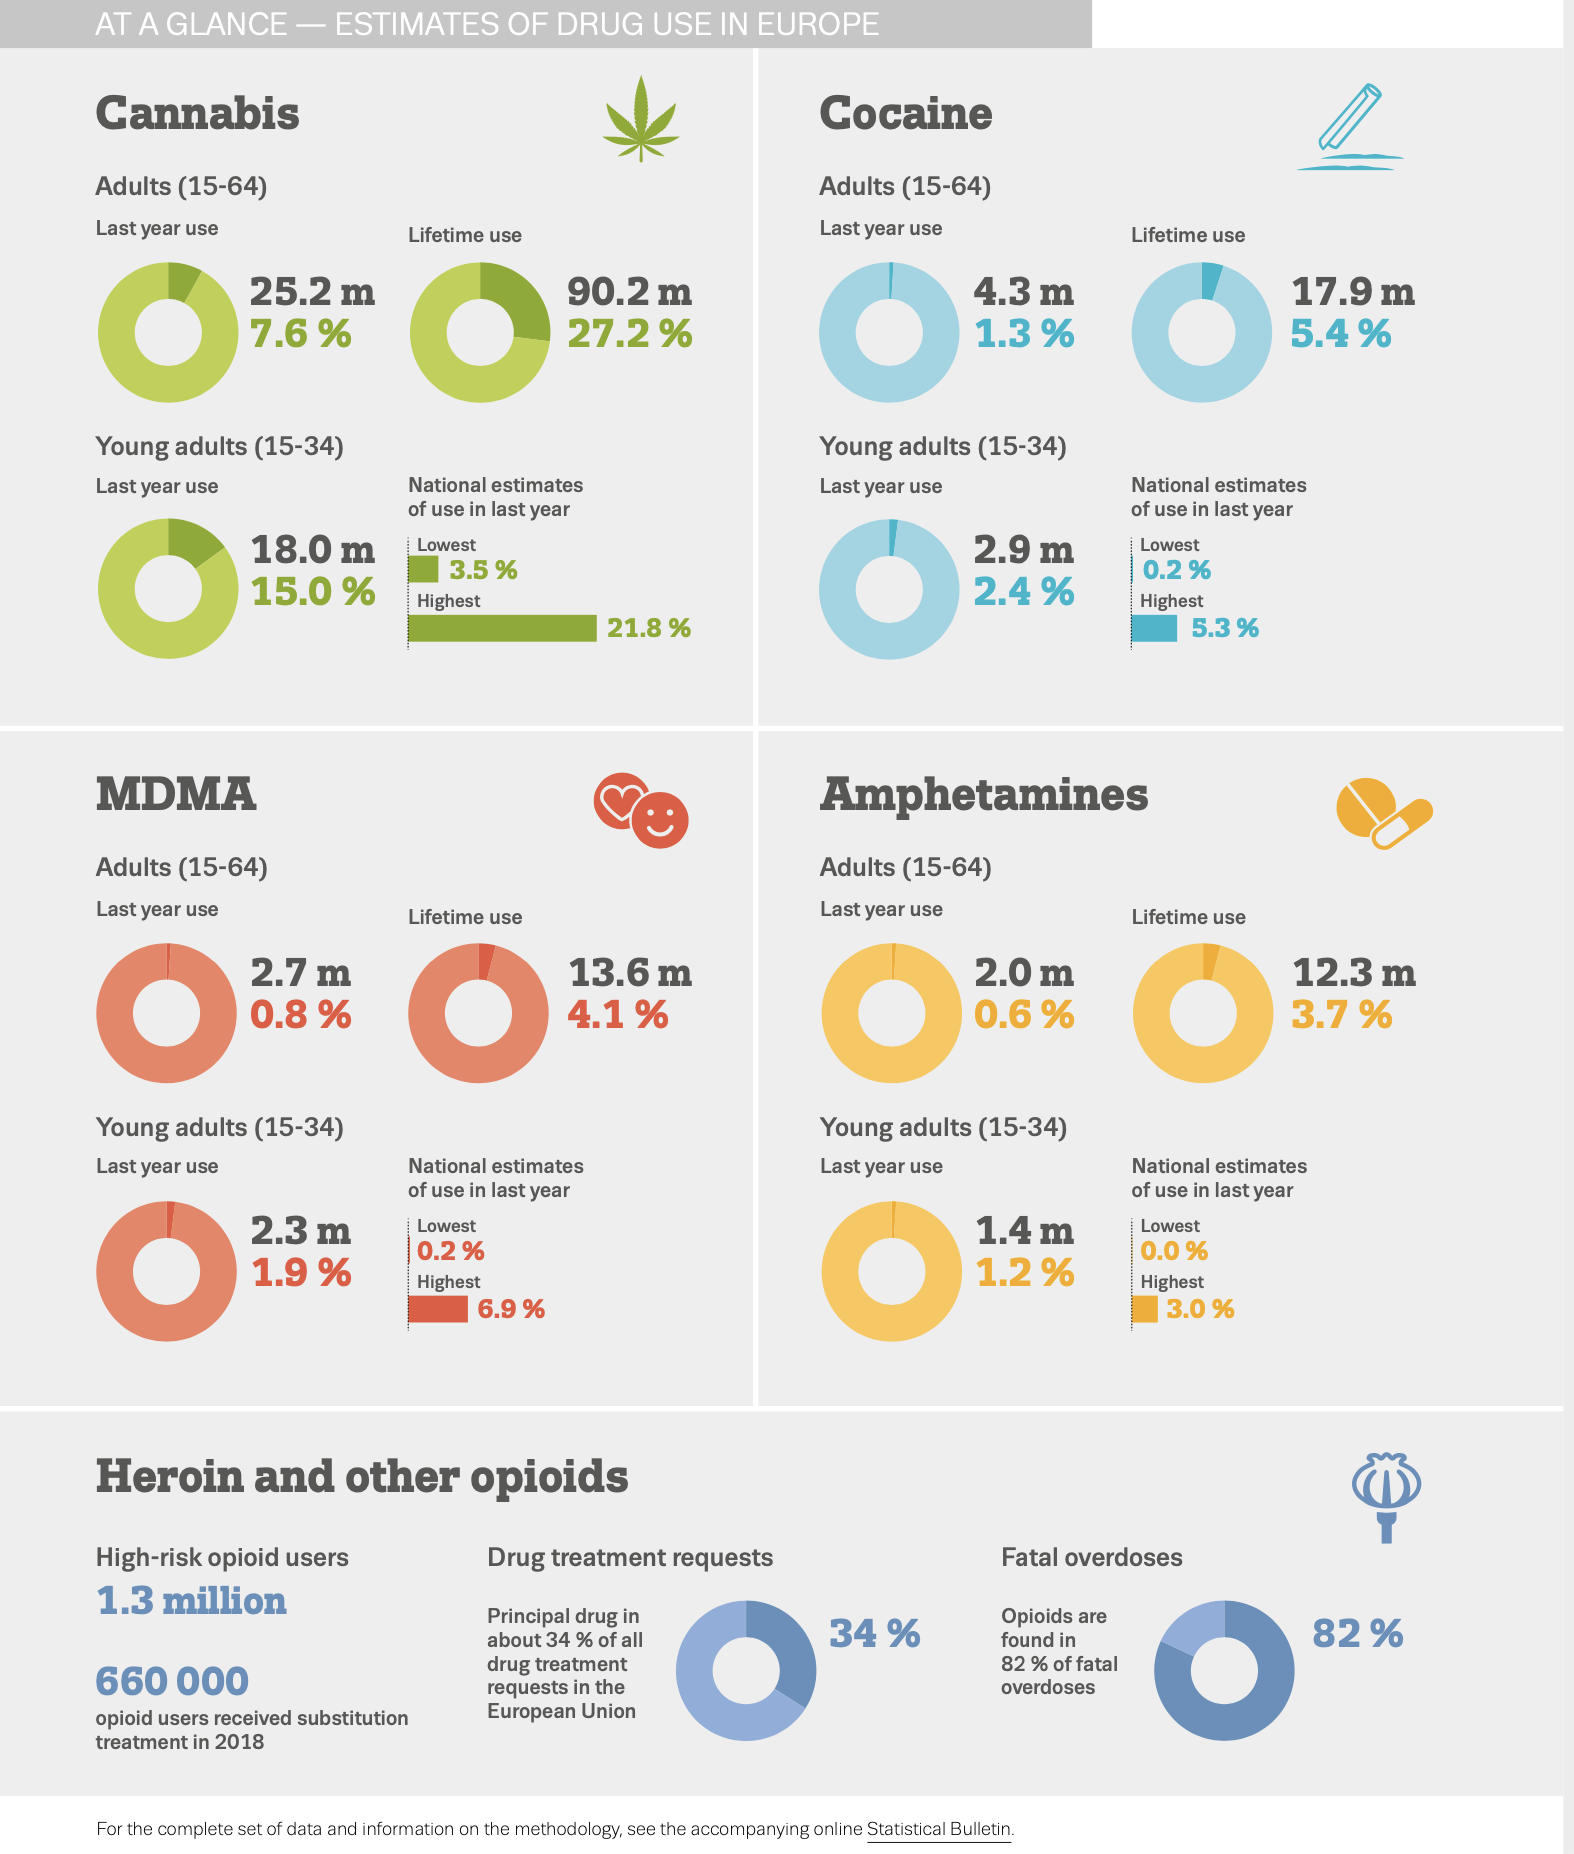 Infographic showing estimates of drug use at a glance